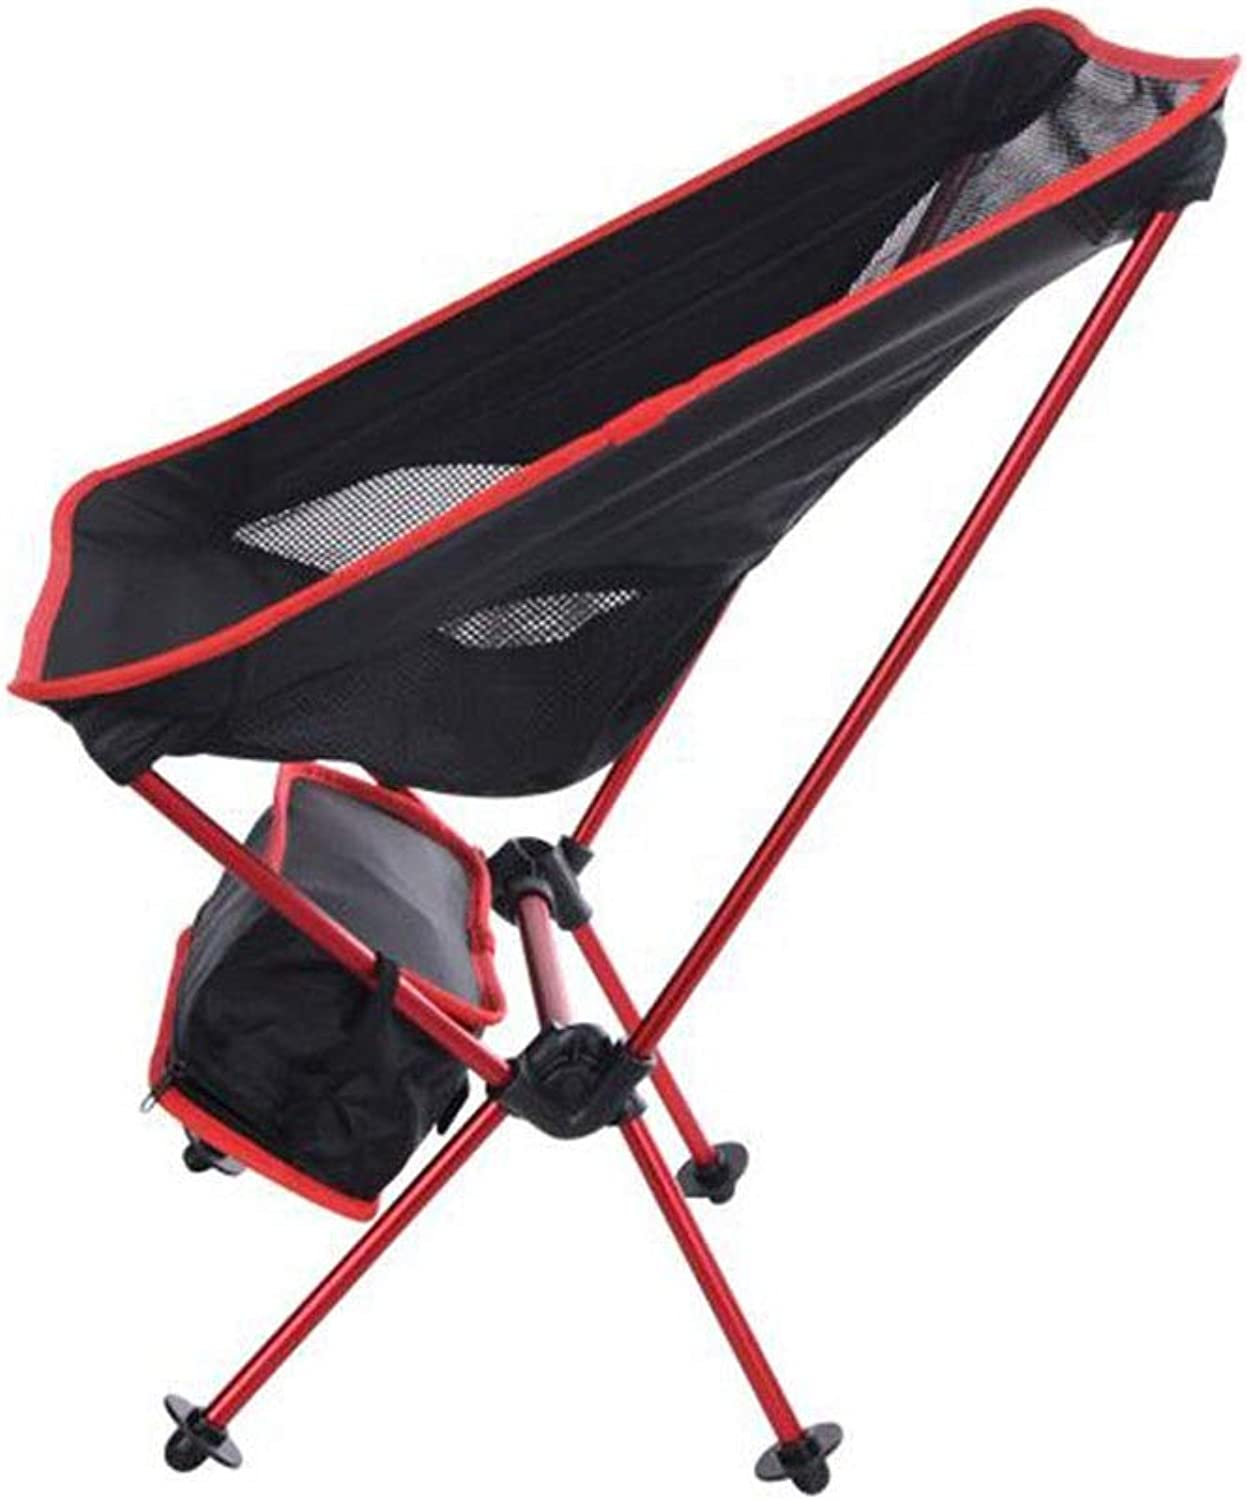 Outdoor Folding Chair Portable Ultra Light Aluminum Moon Chair Leisure Camping Fishing Chair Barbecue Travel Garden Indoor and Outdoor (color   Black)